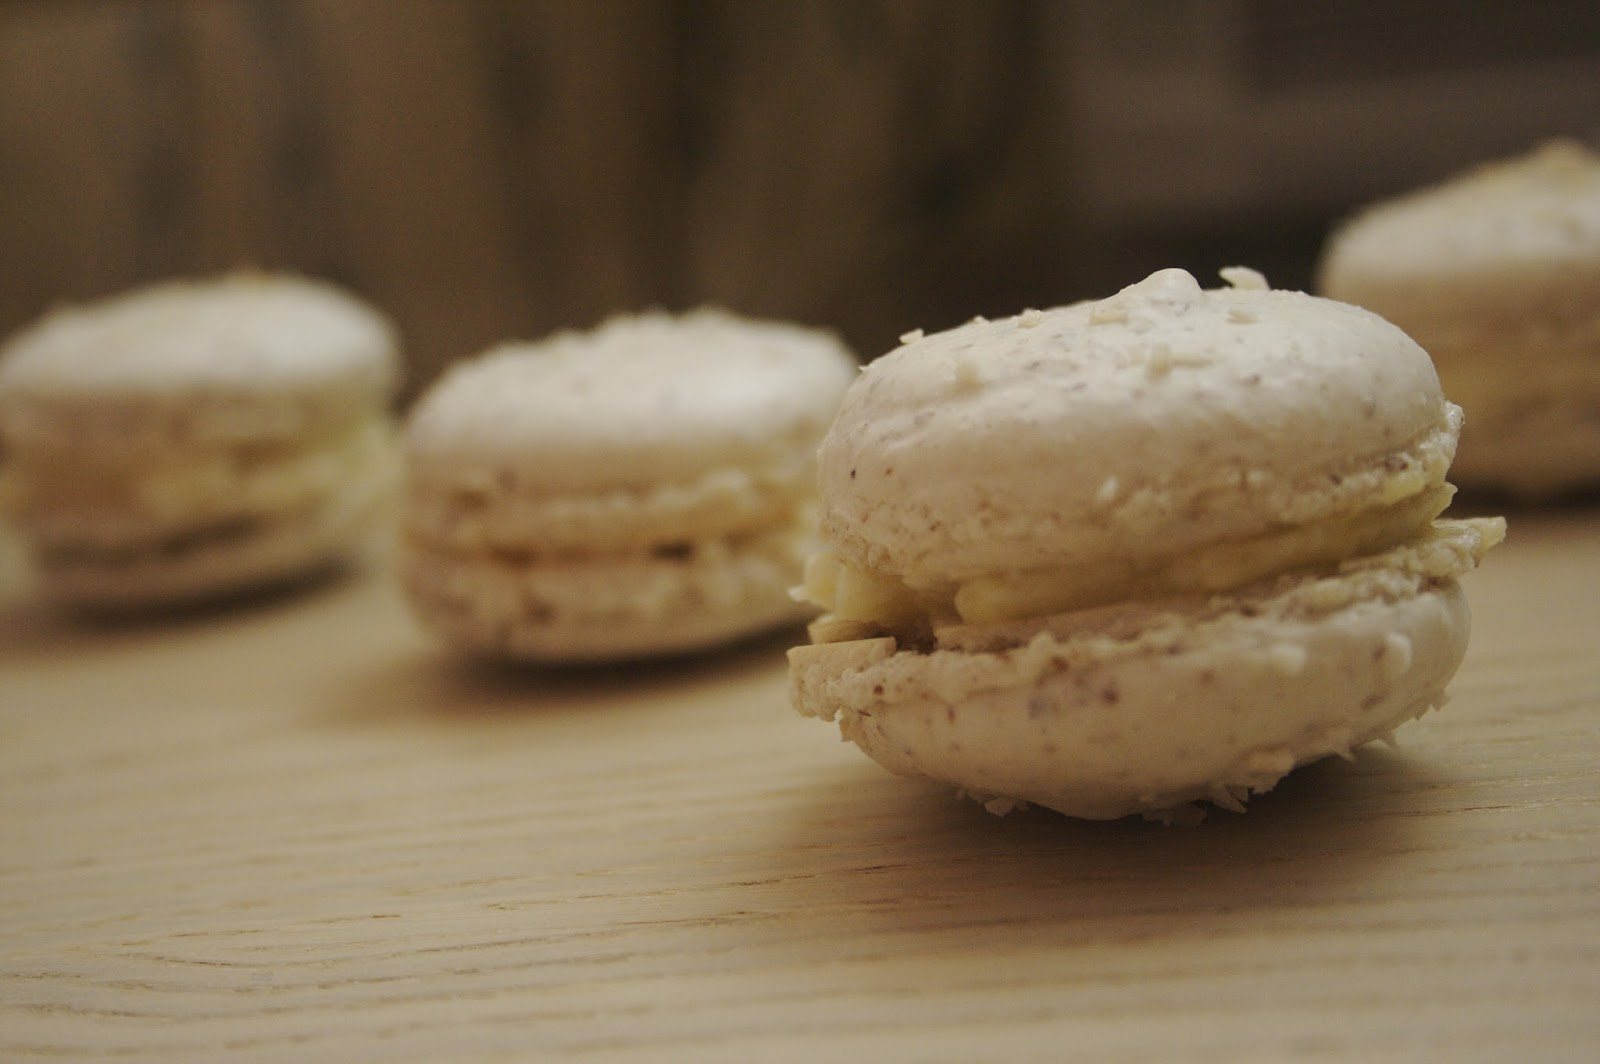 a full life chocolate coconut french macarons